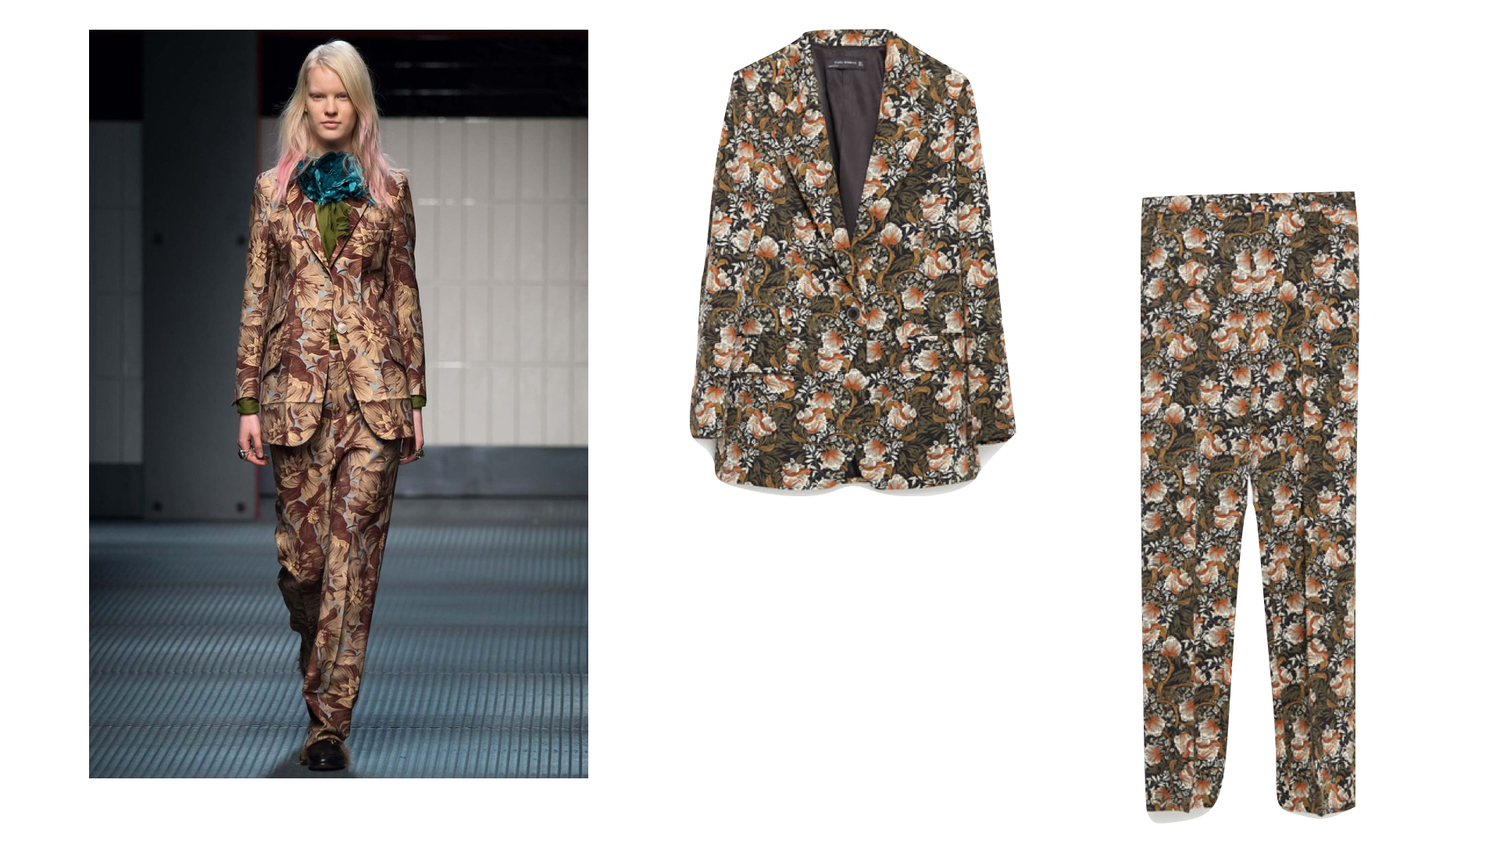 95885241f138 Zara floral print blazer was £69.99 now £29.99   Zara floral print trousers  was £39.99 now £12.99